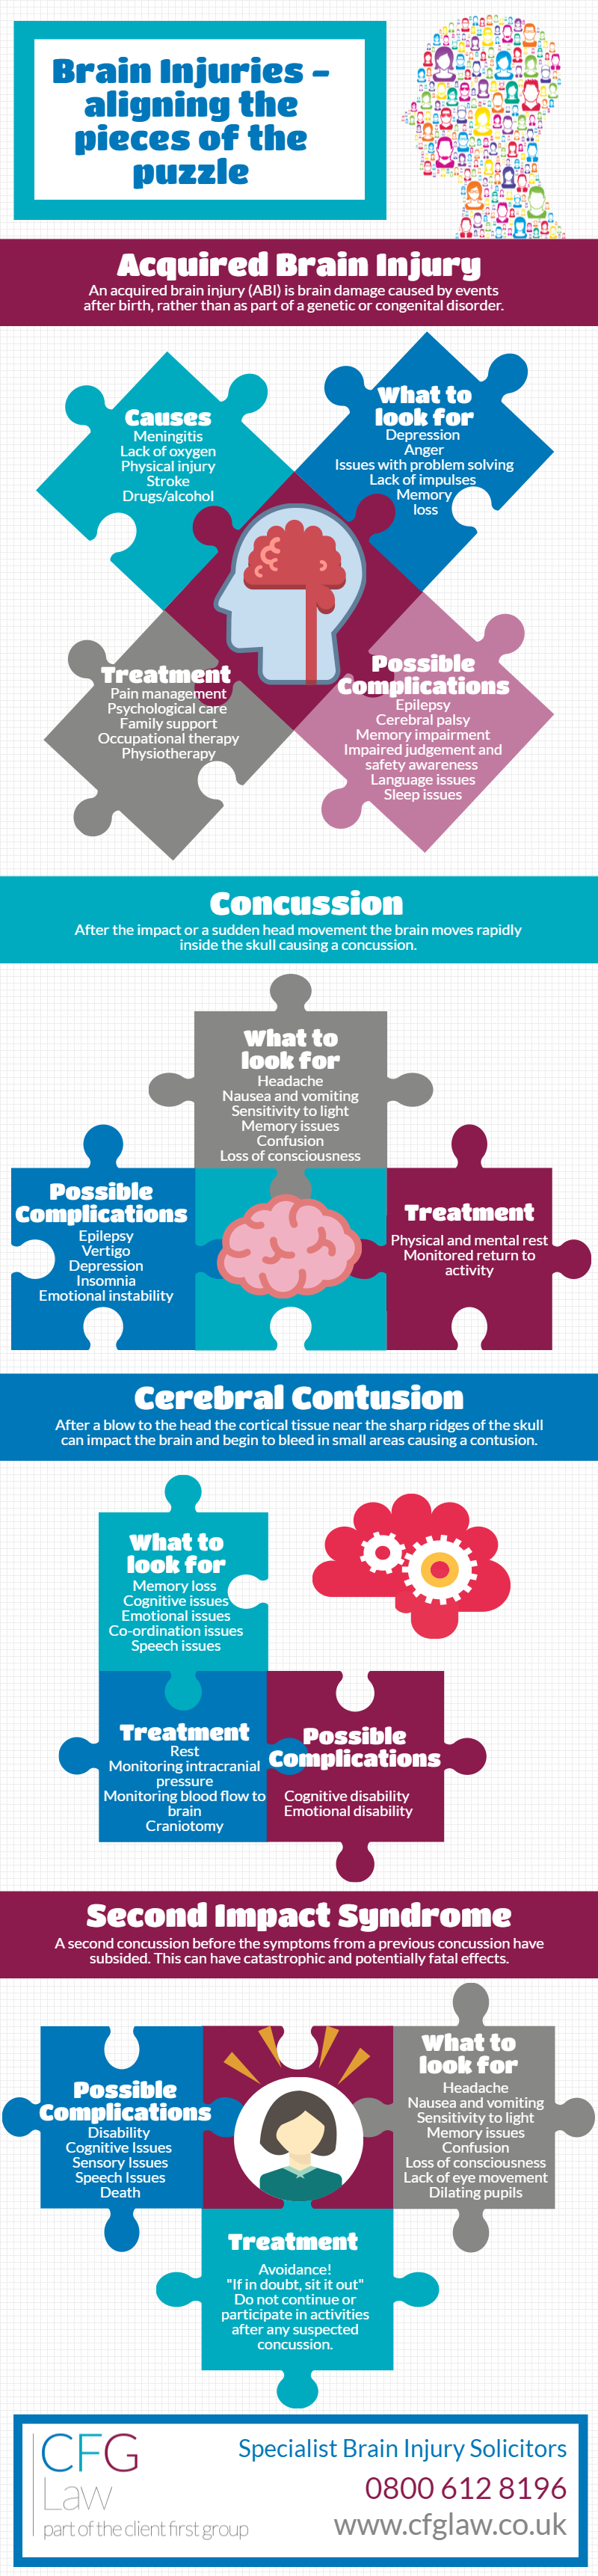 Infographic: Brain Injuries - aligning the pieces of the puzzle